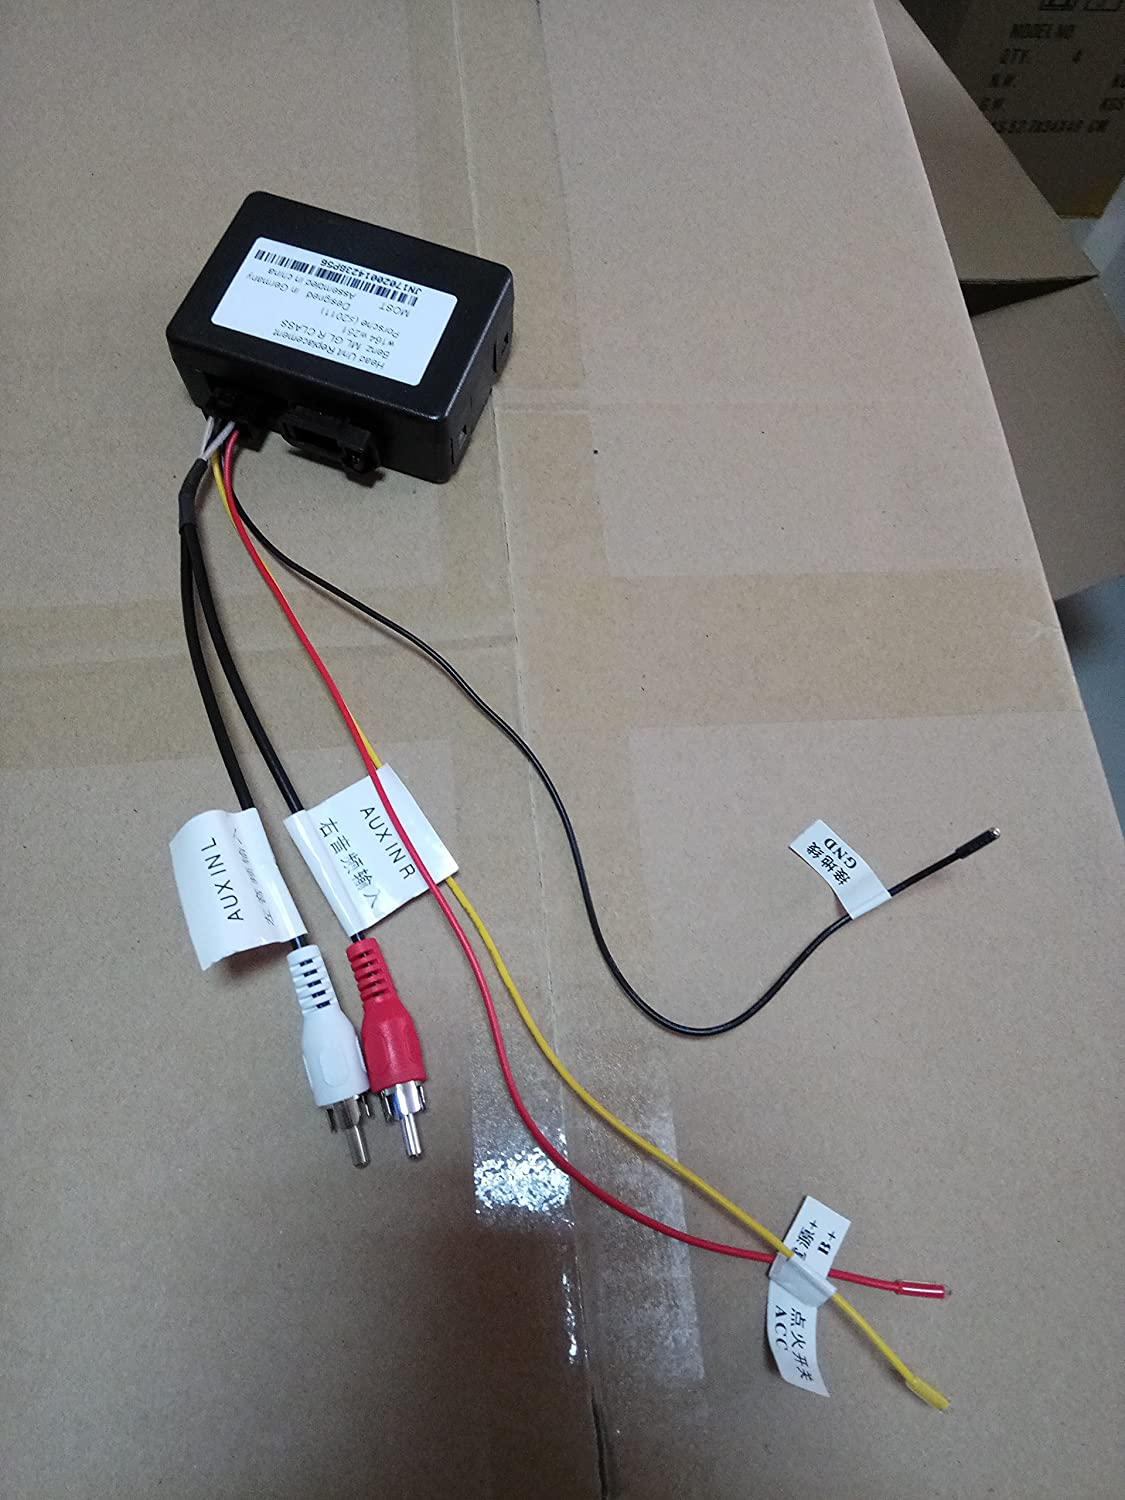 hizpo Fiber Optic Box Adapter Cayenne Max 48% OFF for Hizpo Stereo Benz Sales of SALE items from new works